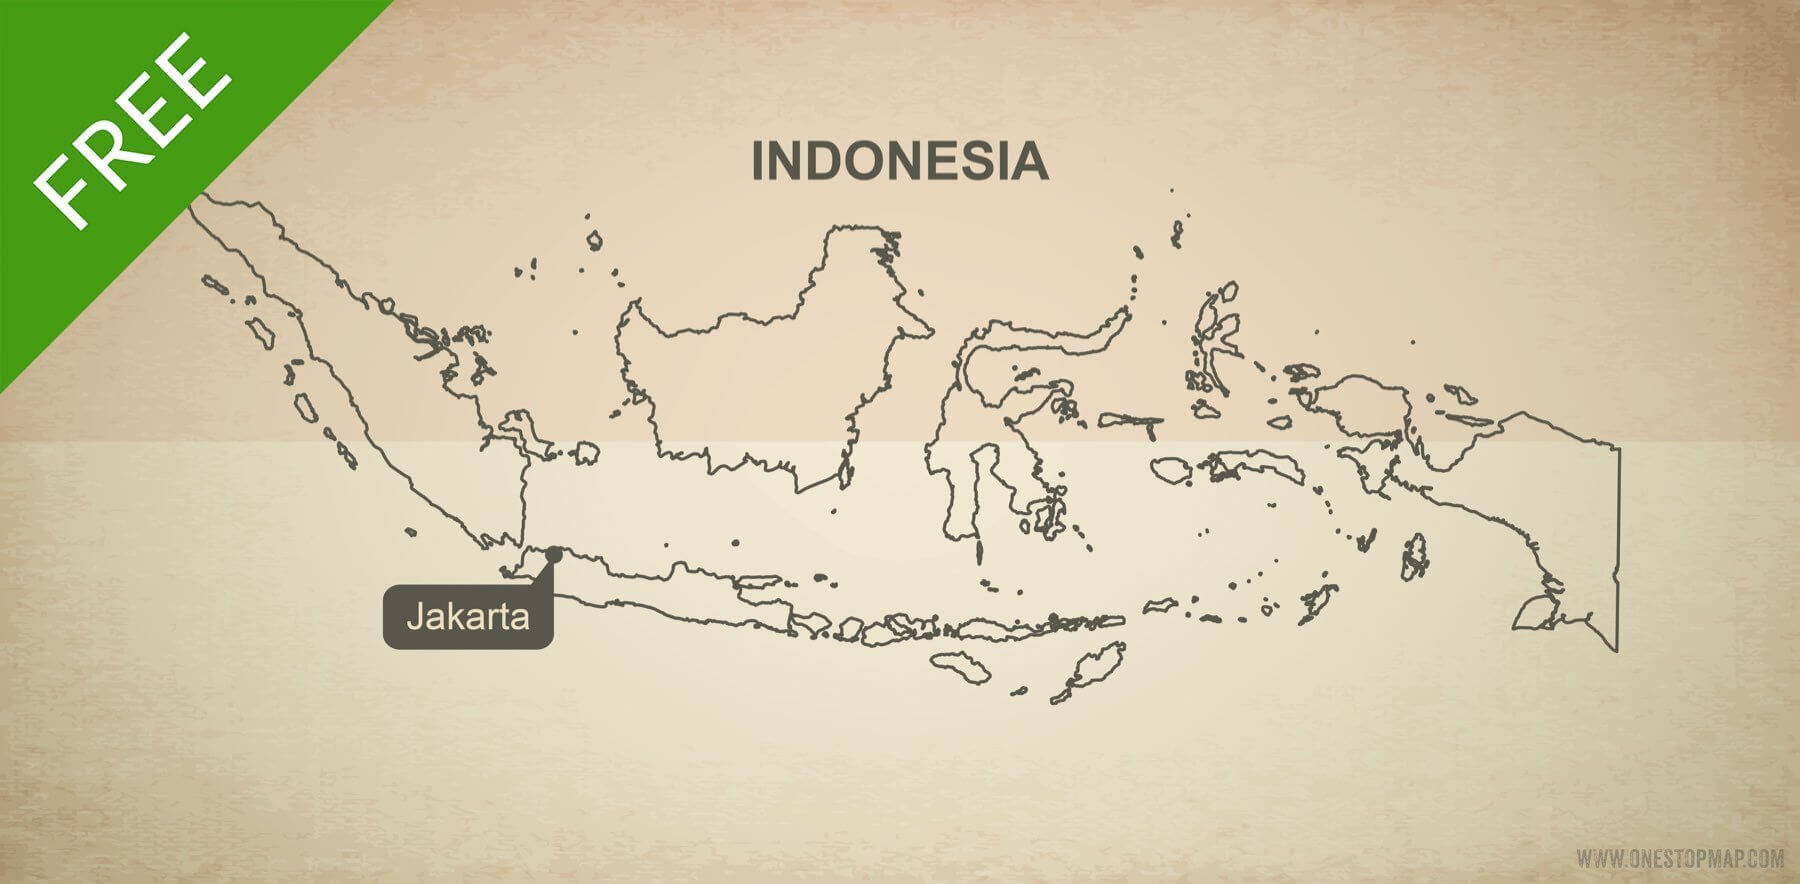 Free vector map of Indonesia outline